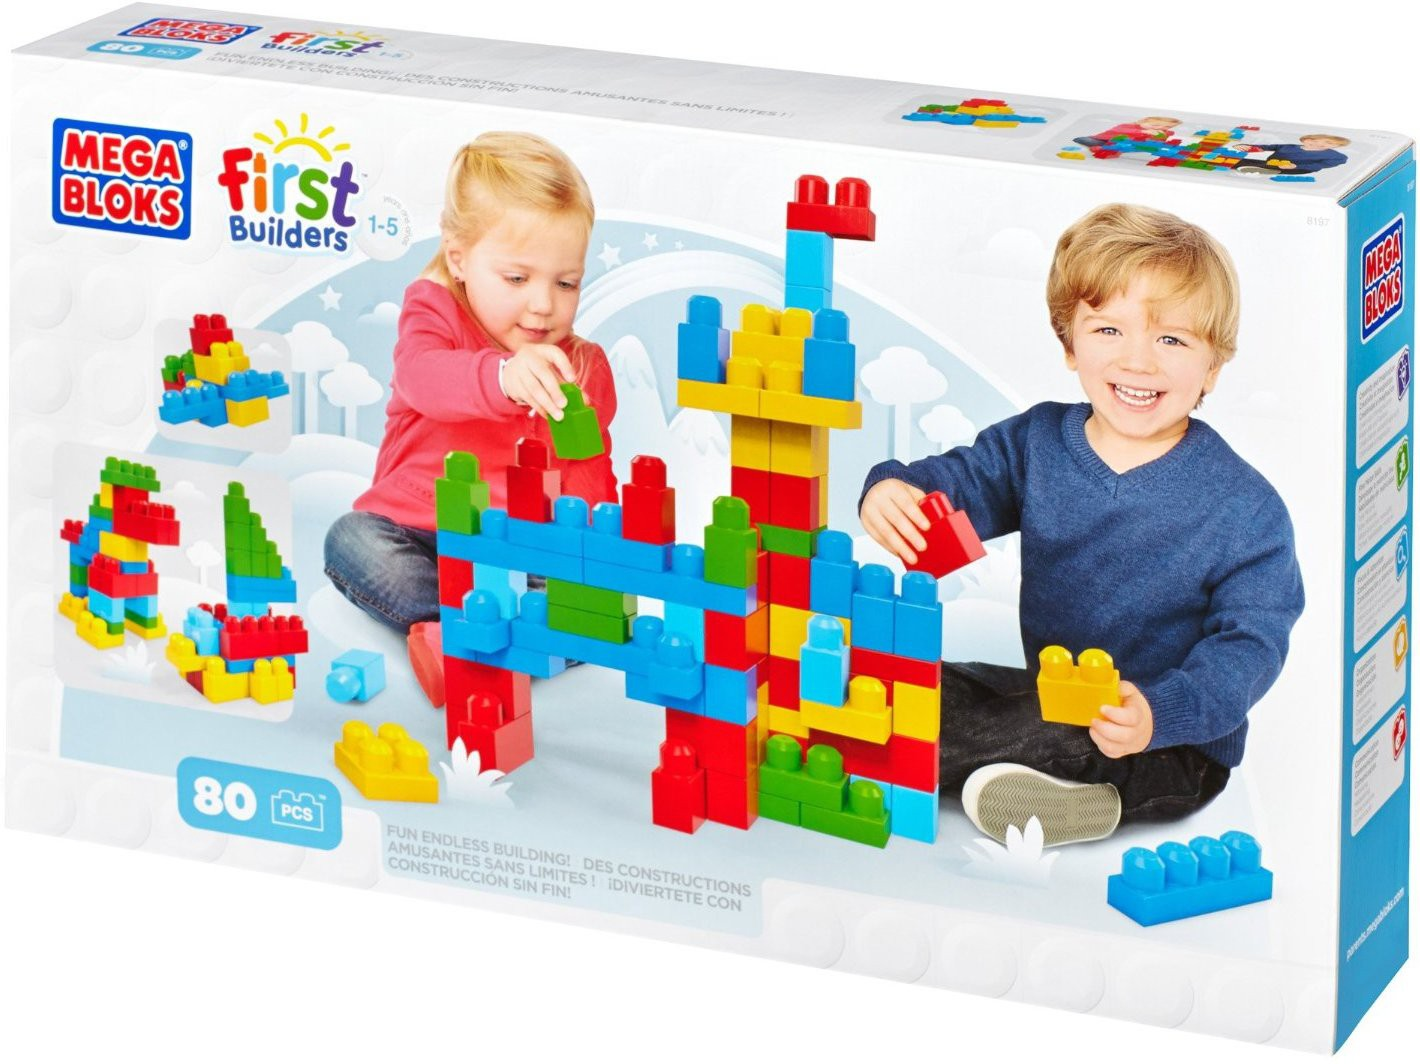 Deals | Minimum 30% Off Thematic Blocks, Robots.